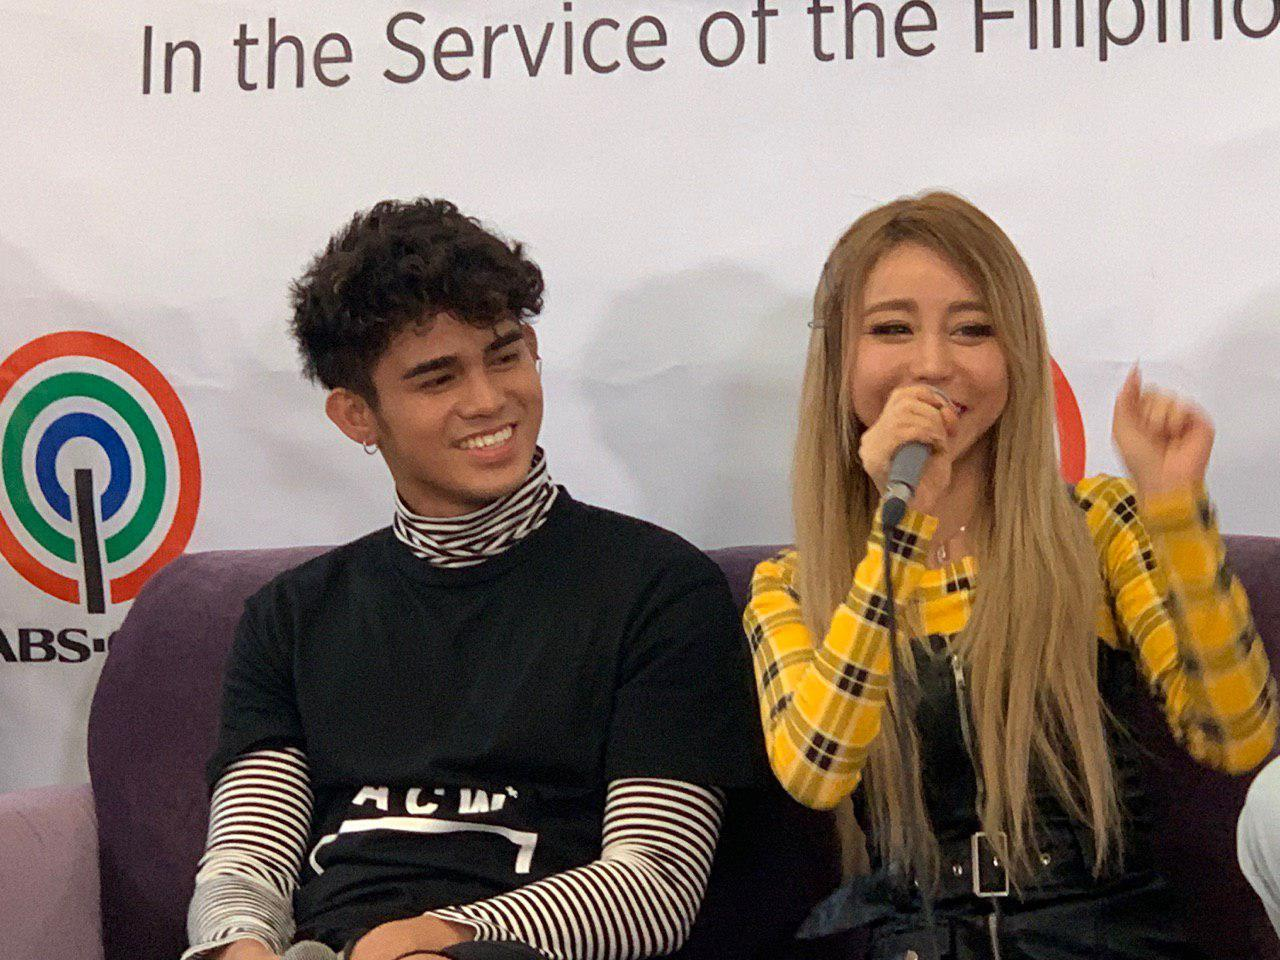 Iñigo, Wengie collab for 'Mr. Nice Guy'